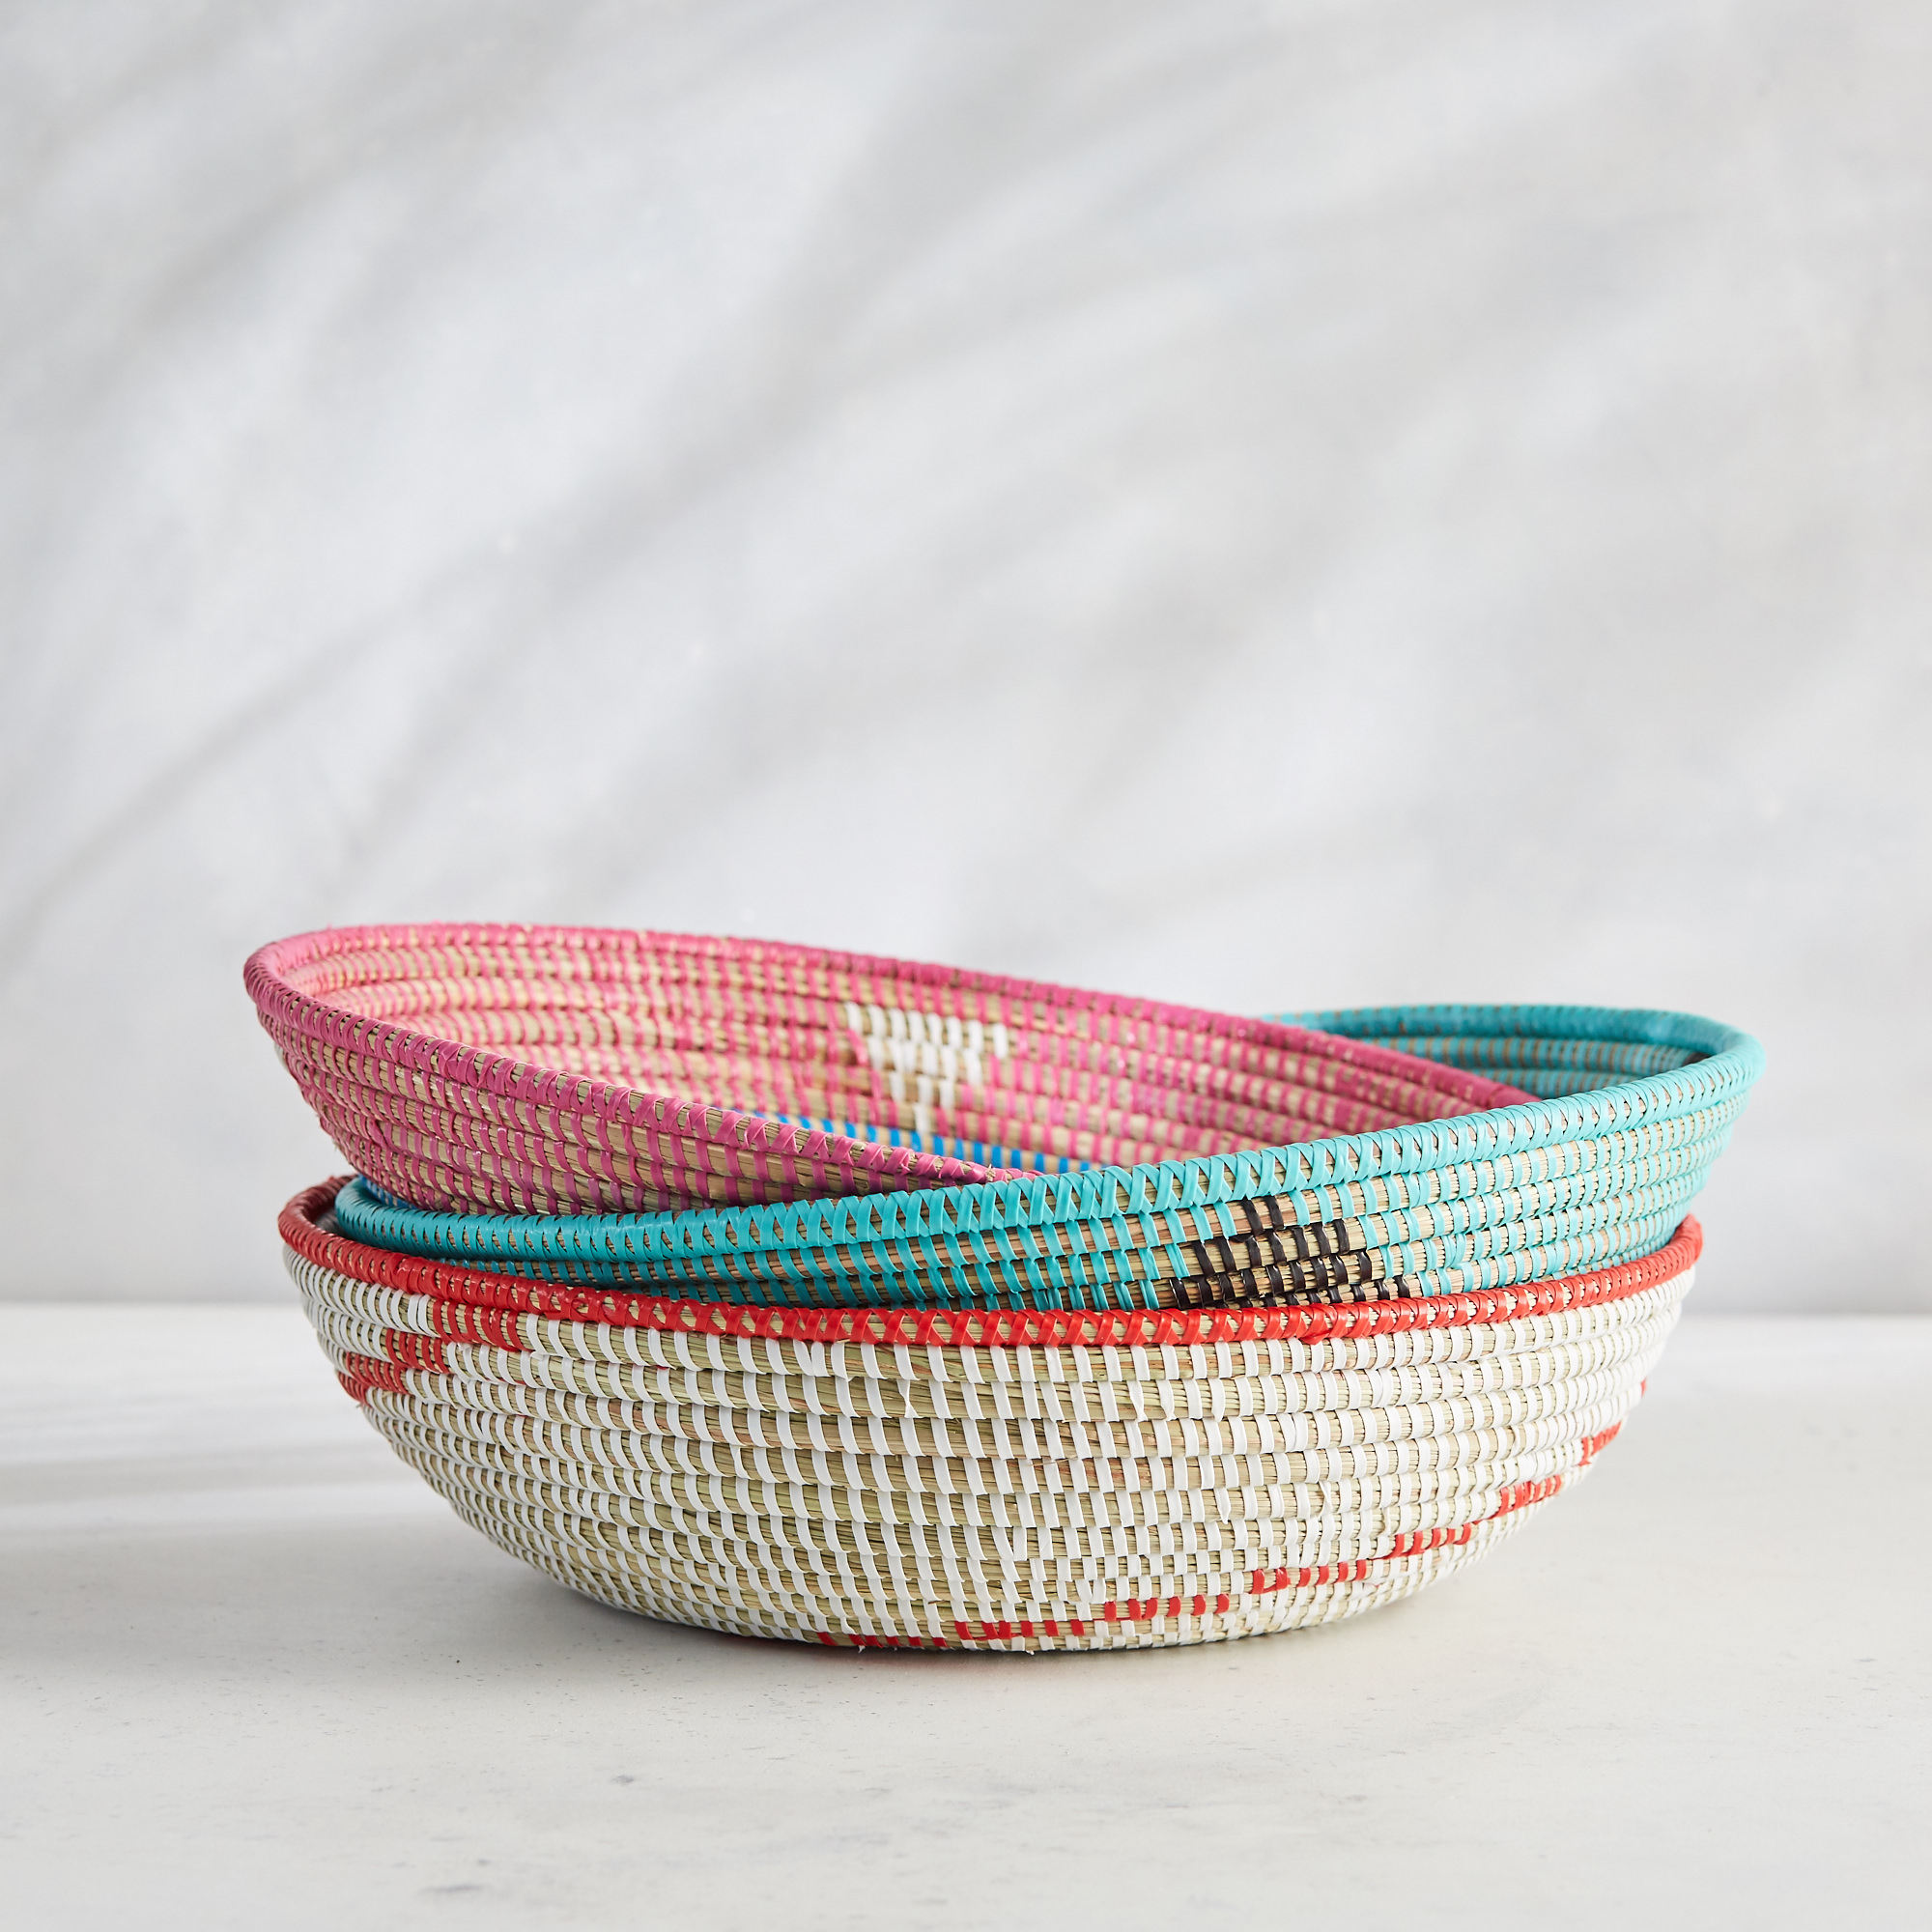 LaBasketry-17.6.1712225 1.jpg